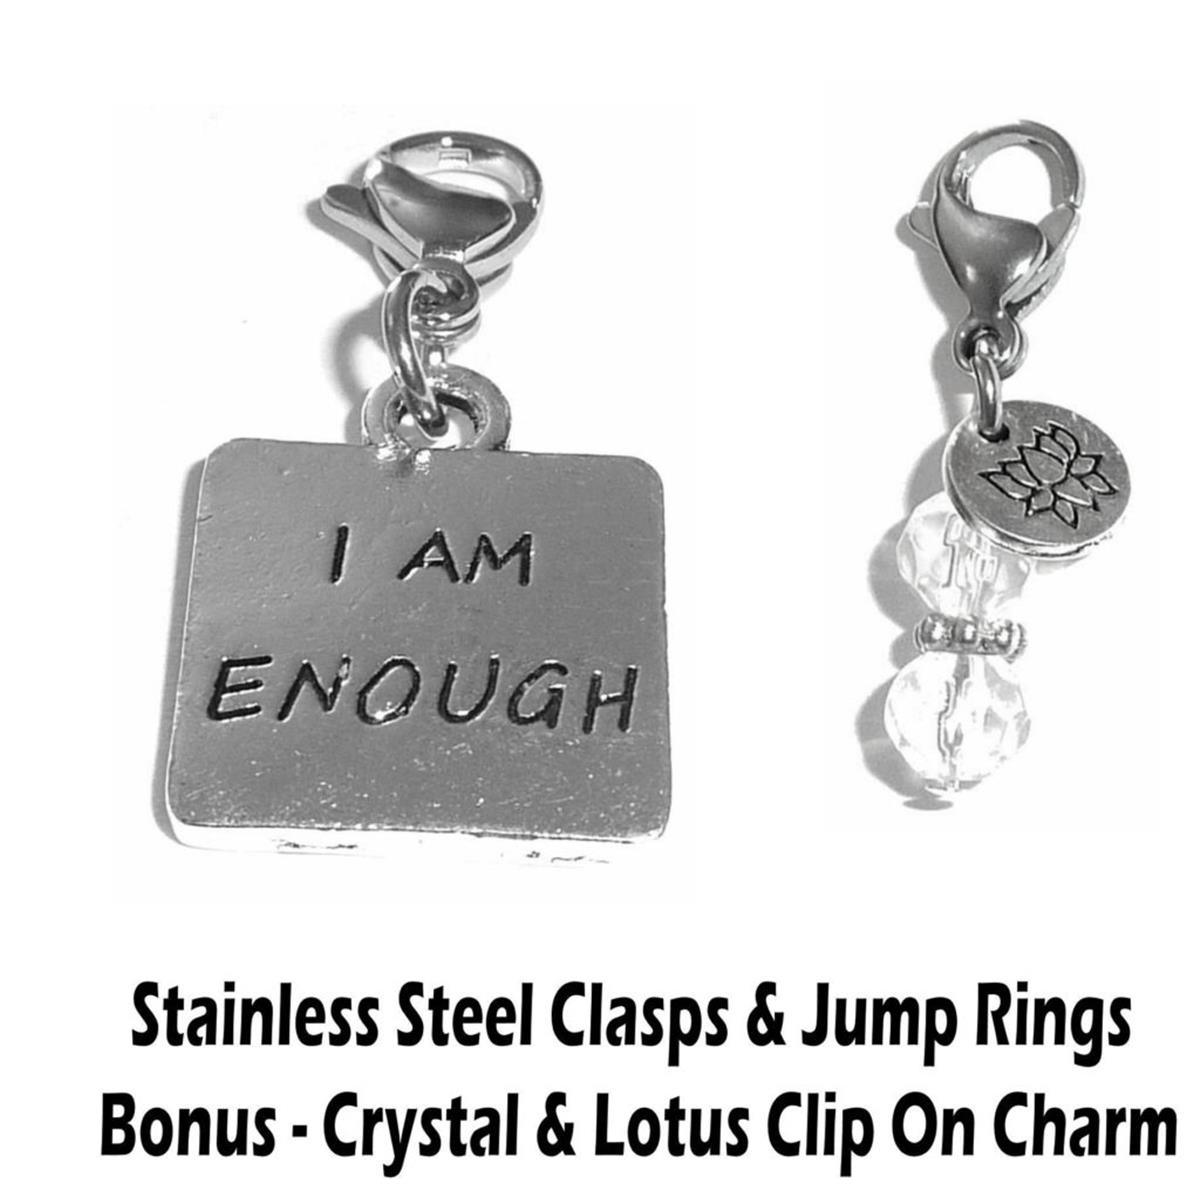 I Am Enough clip on charm - inspirational charms